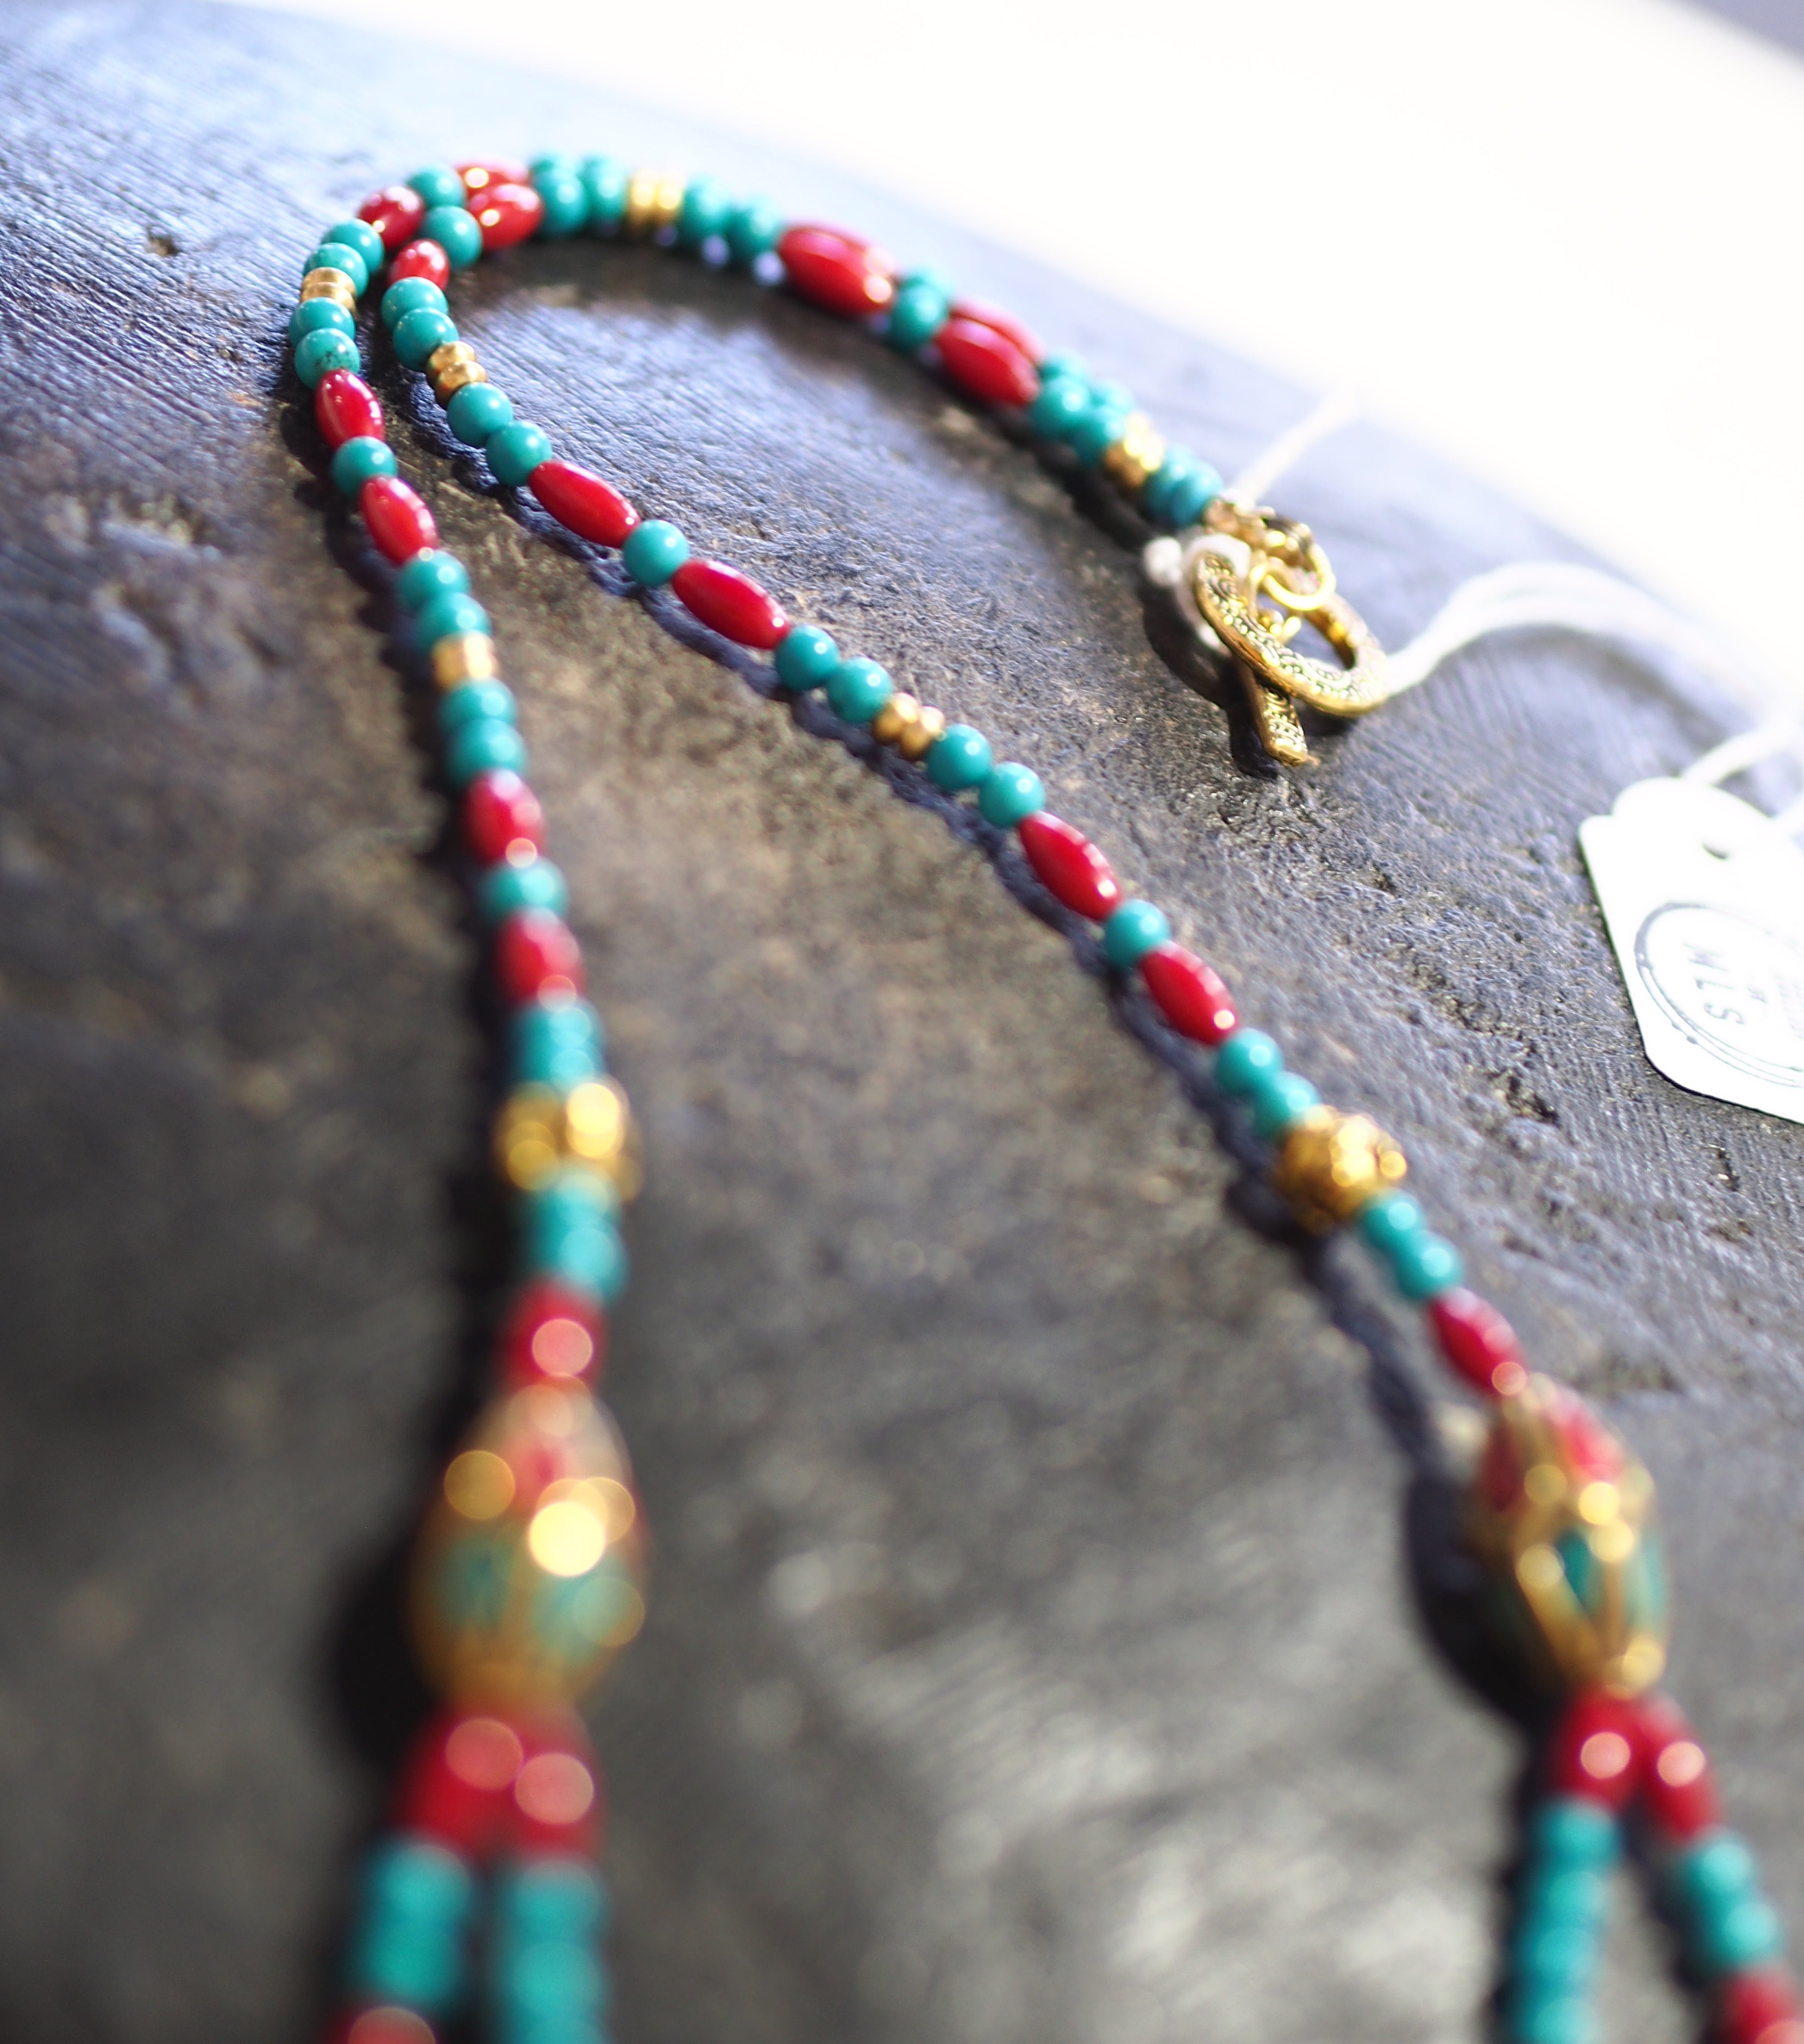 Tibetan + Genuine Turquoise bead - 2string L Necklace - 58N